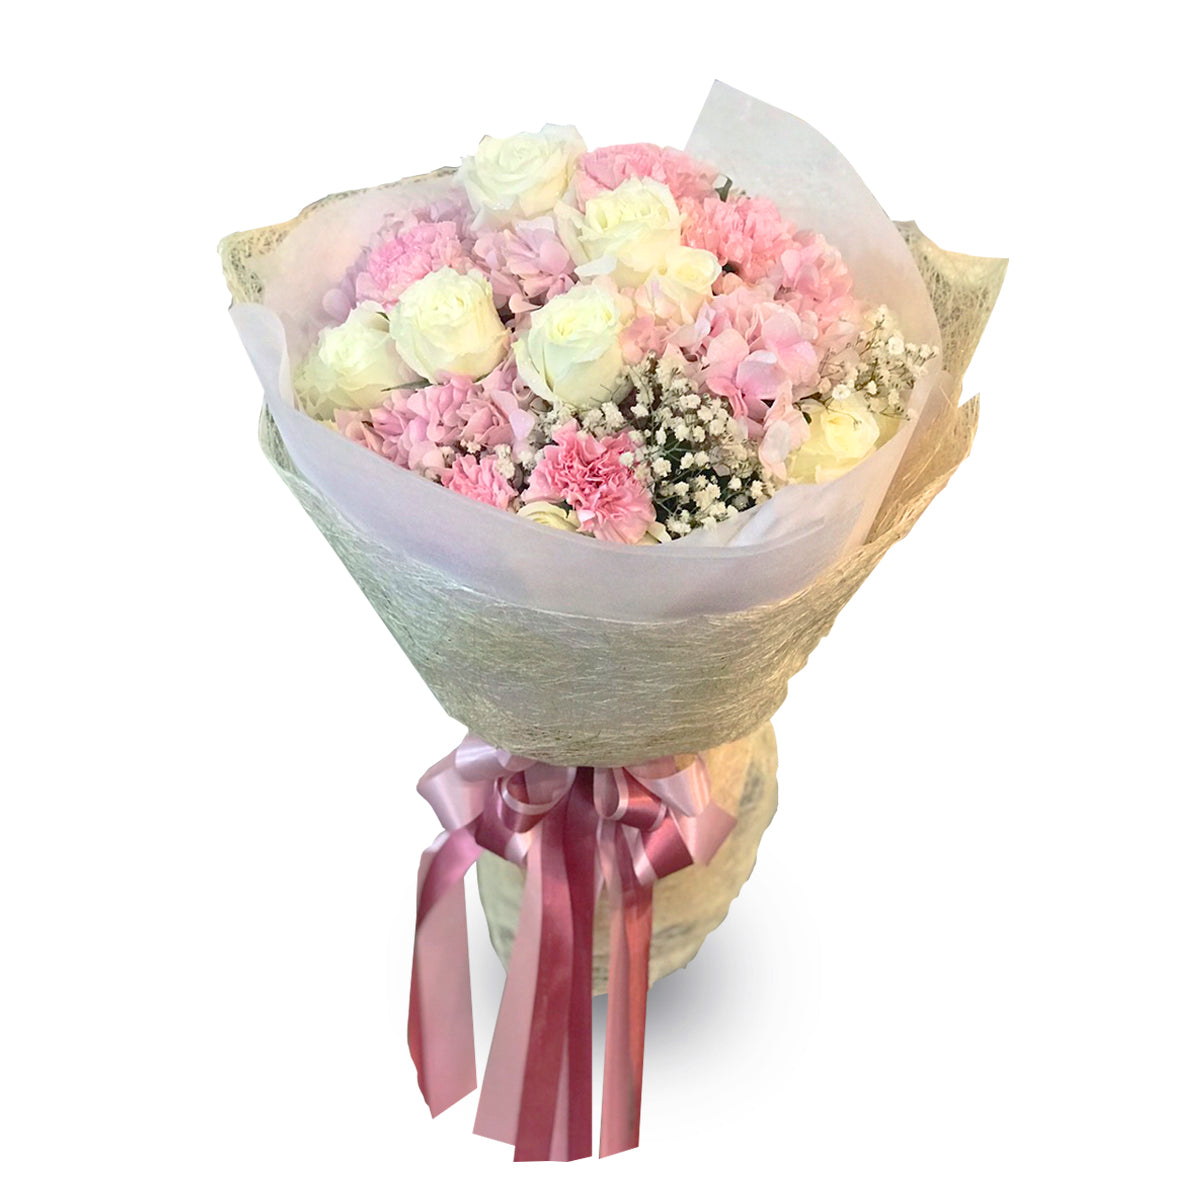 Romantic Bouquet With Roses, Carnation And Hydrangea - April Flora